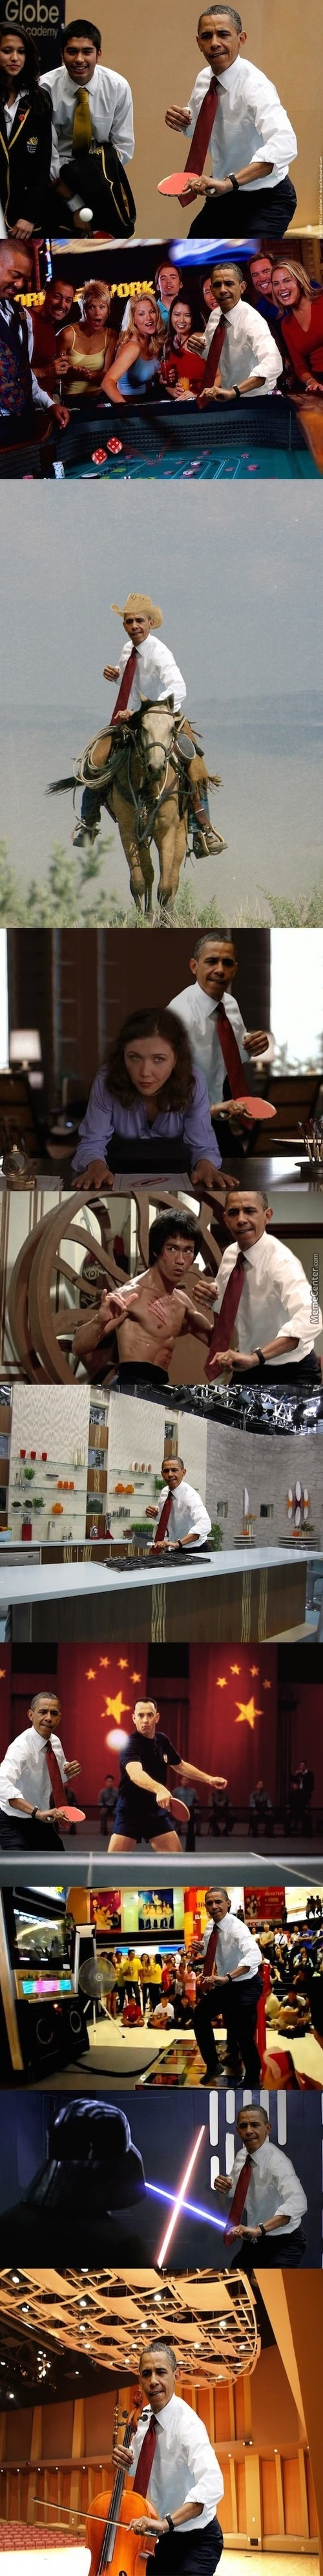 Obama Playing Table Tennis...